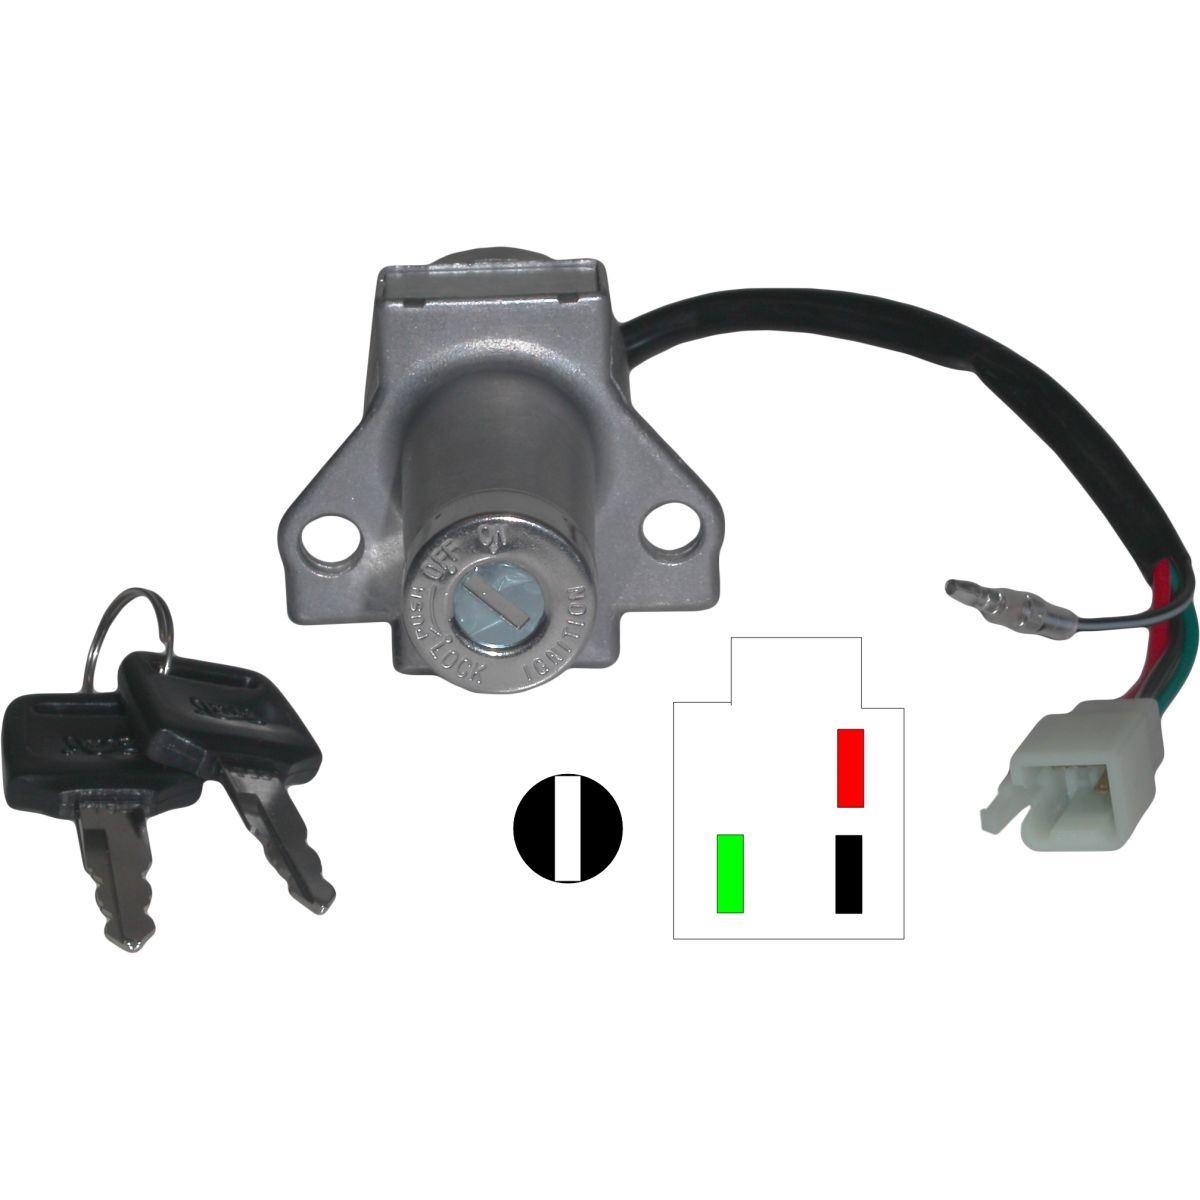 Aw Motorcycle Parts  Ignition Switch Honda Xl125r  Mbx50  Mbx80  Mbx125rs 4 Wires